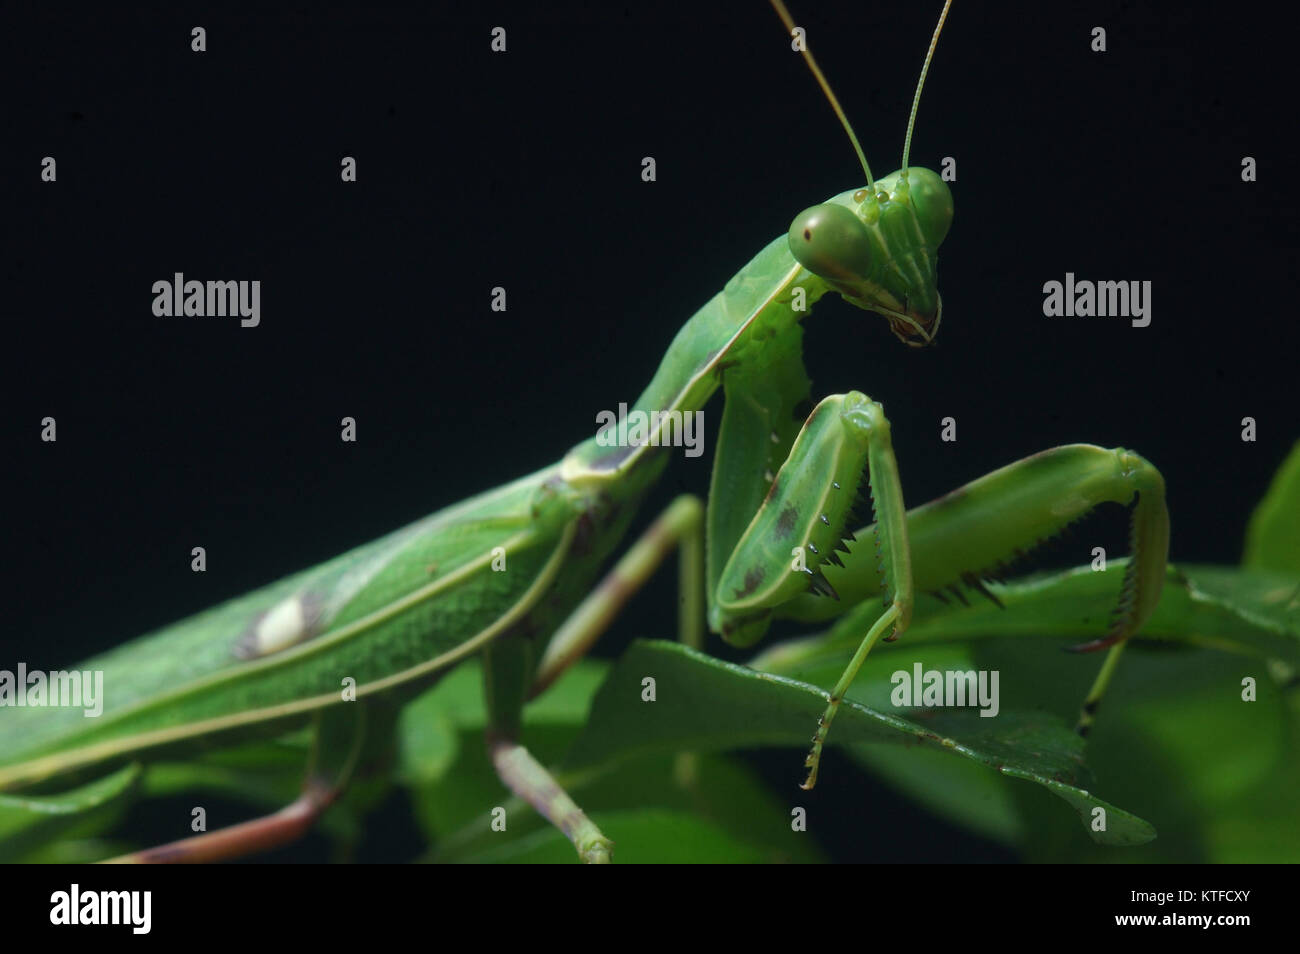 Spotted praying mantis, on leaves in Tamil Nadu, South India - Stock Image